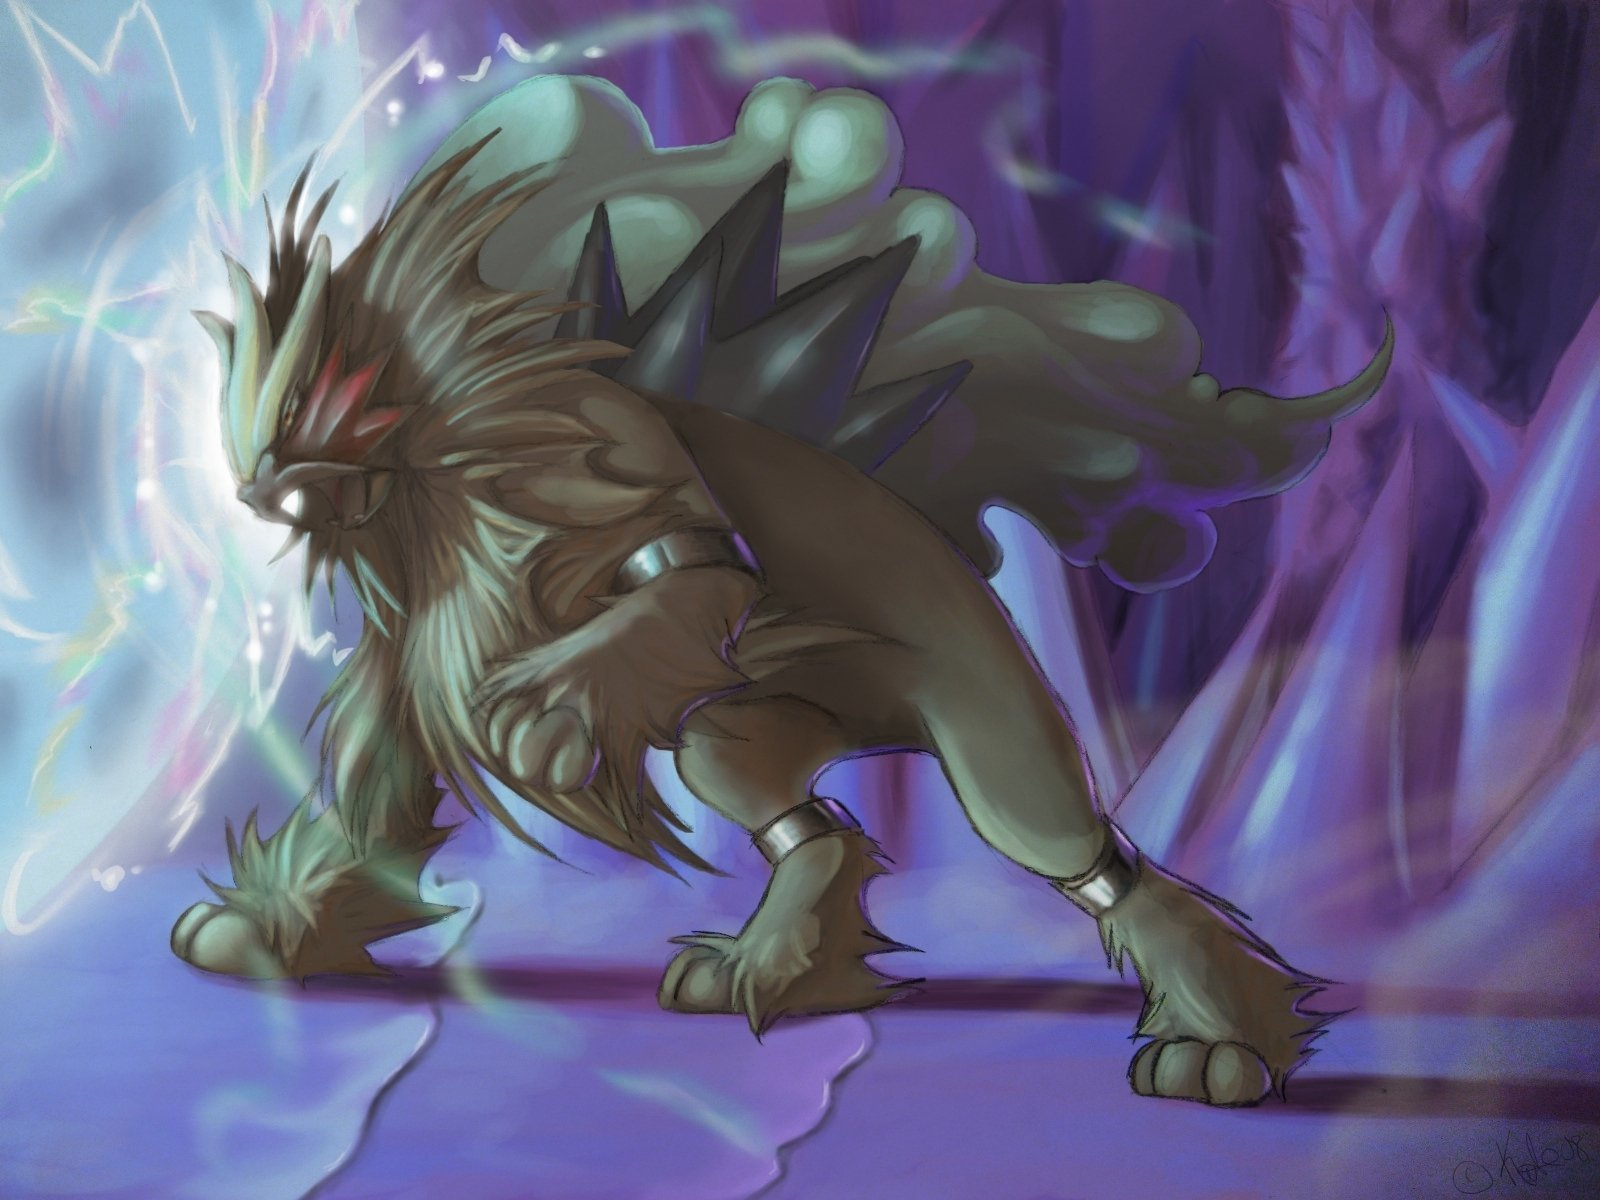 Best Entei (Pokemon) wallpaper ID:278842 for High Resolution hd 1600x1200 PC